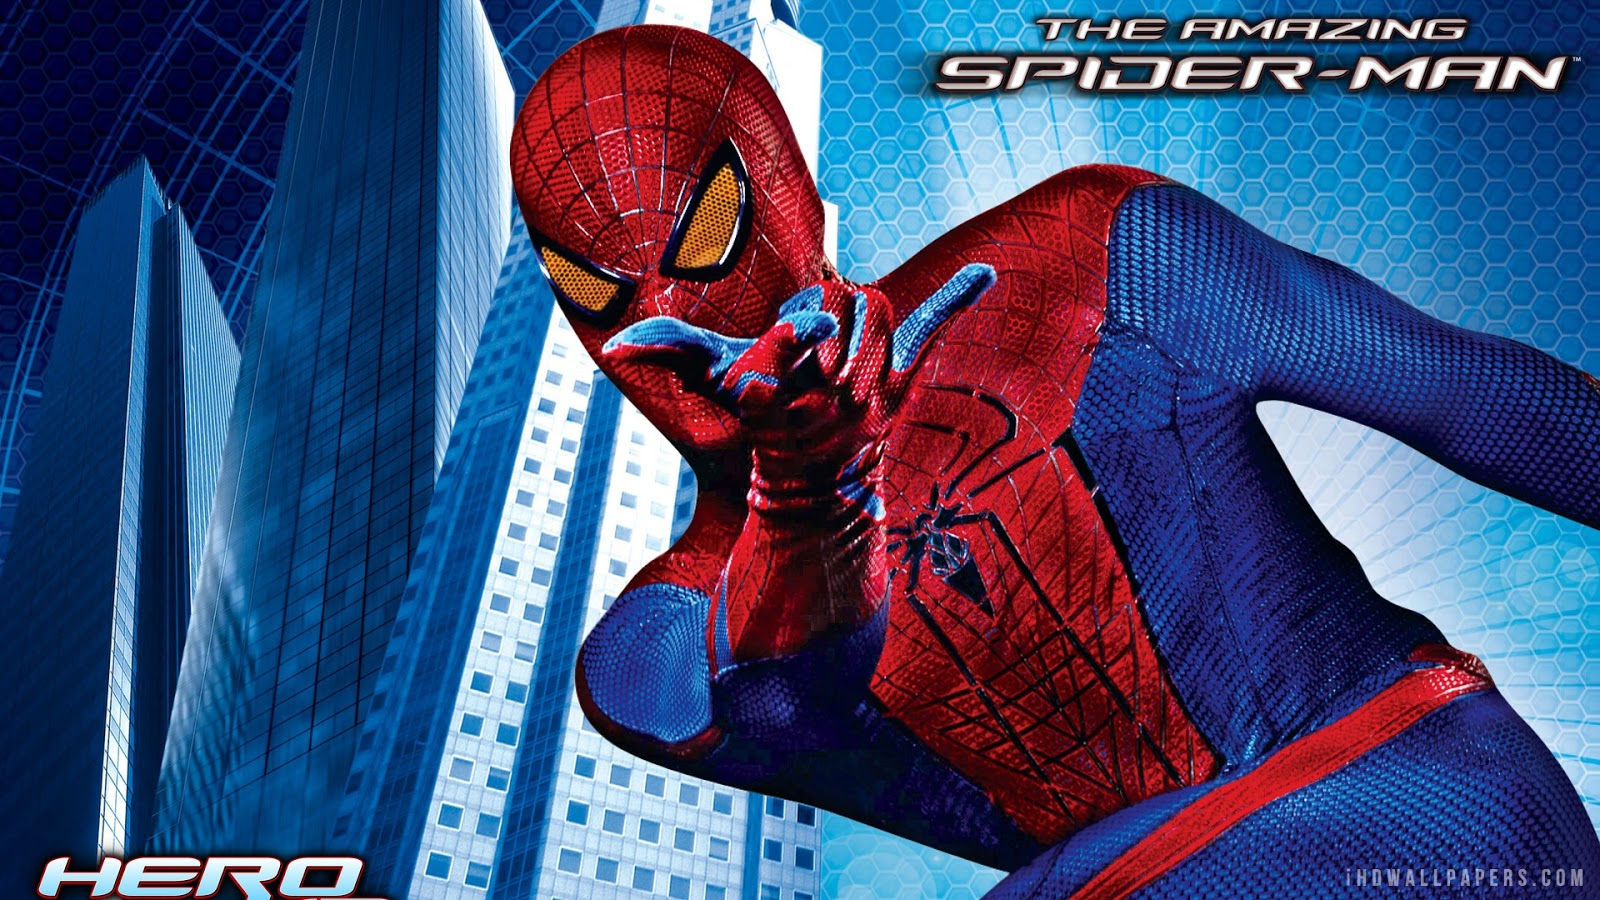 The Amazing Spiderman Wallpapers HD Free